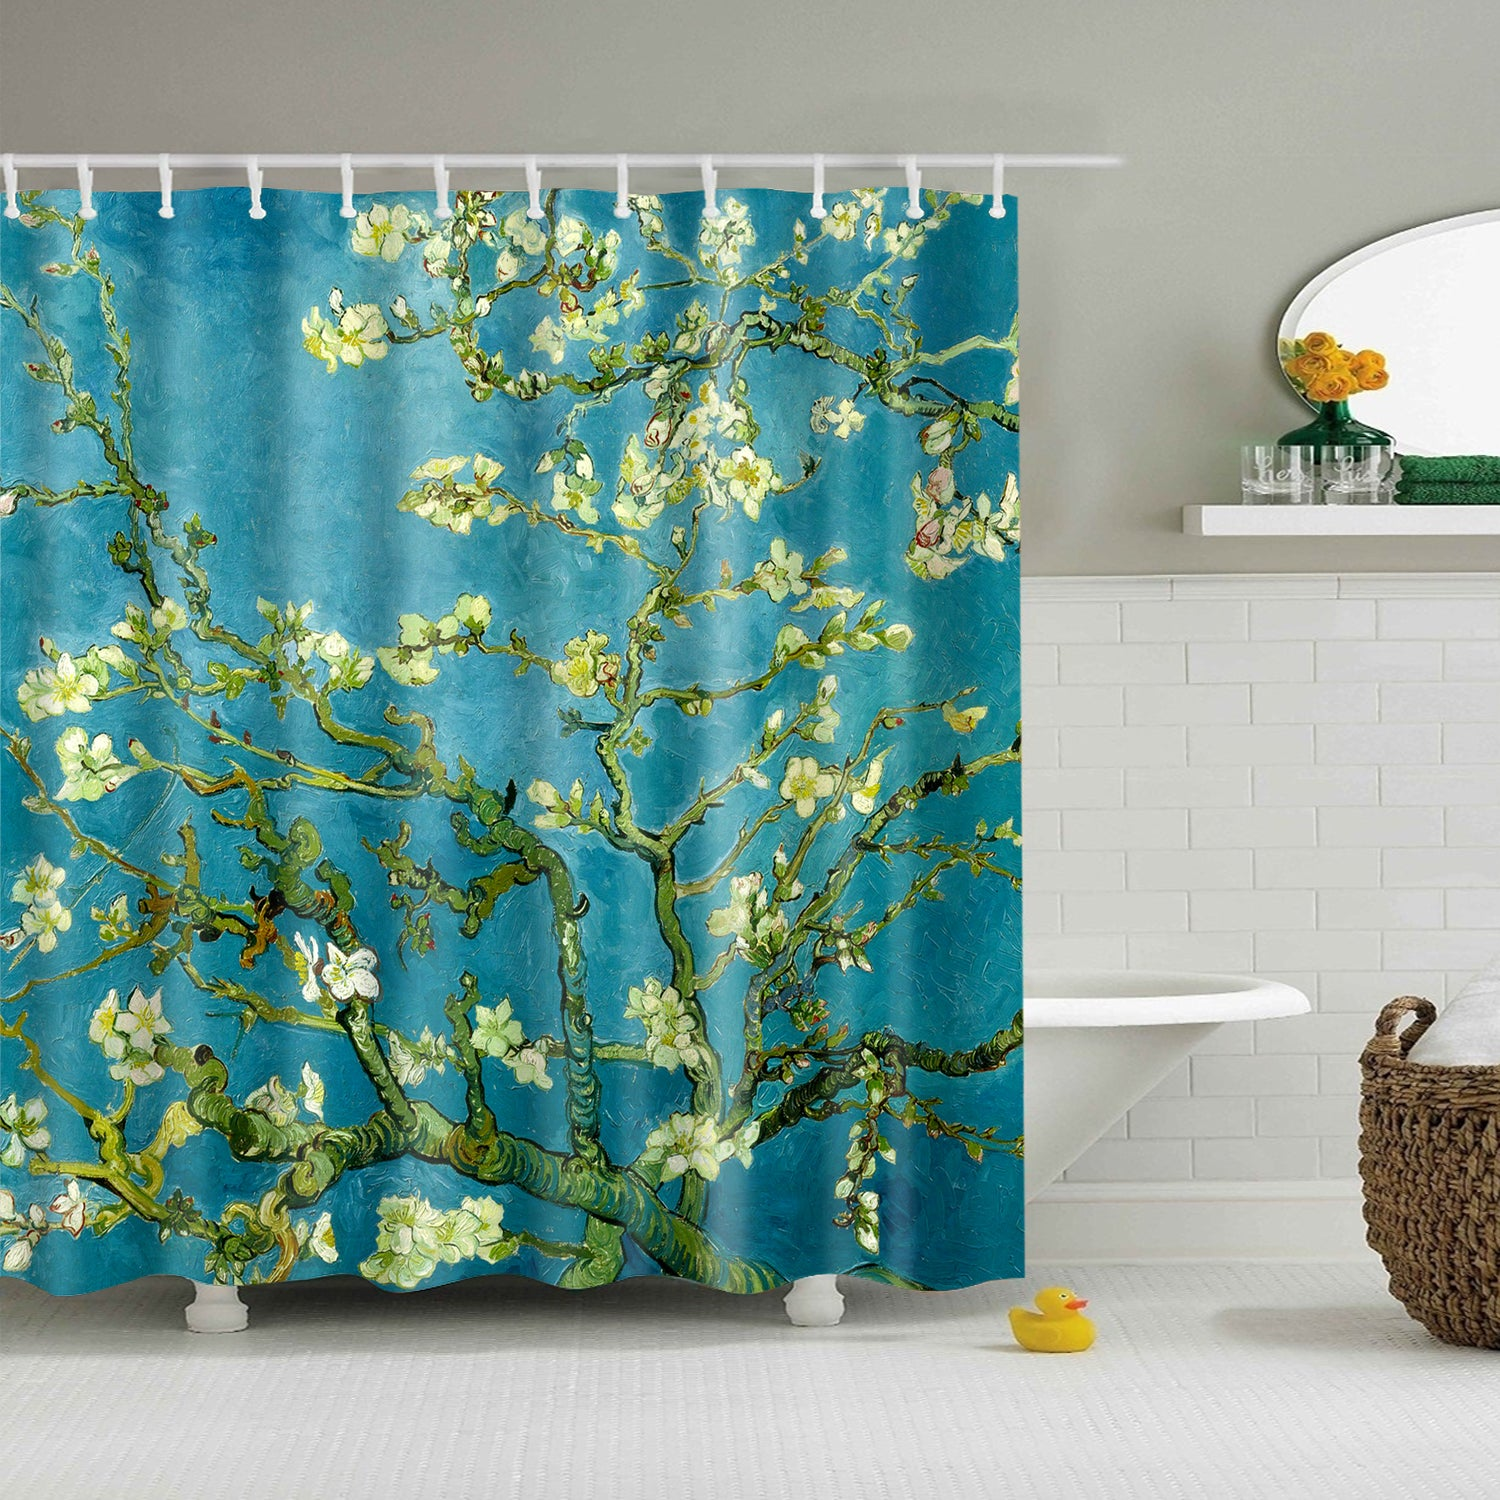 Van Gogh Almond Blossom Shower Curtain